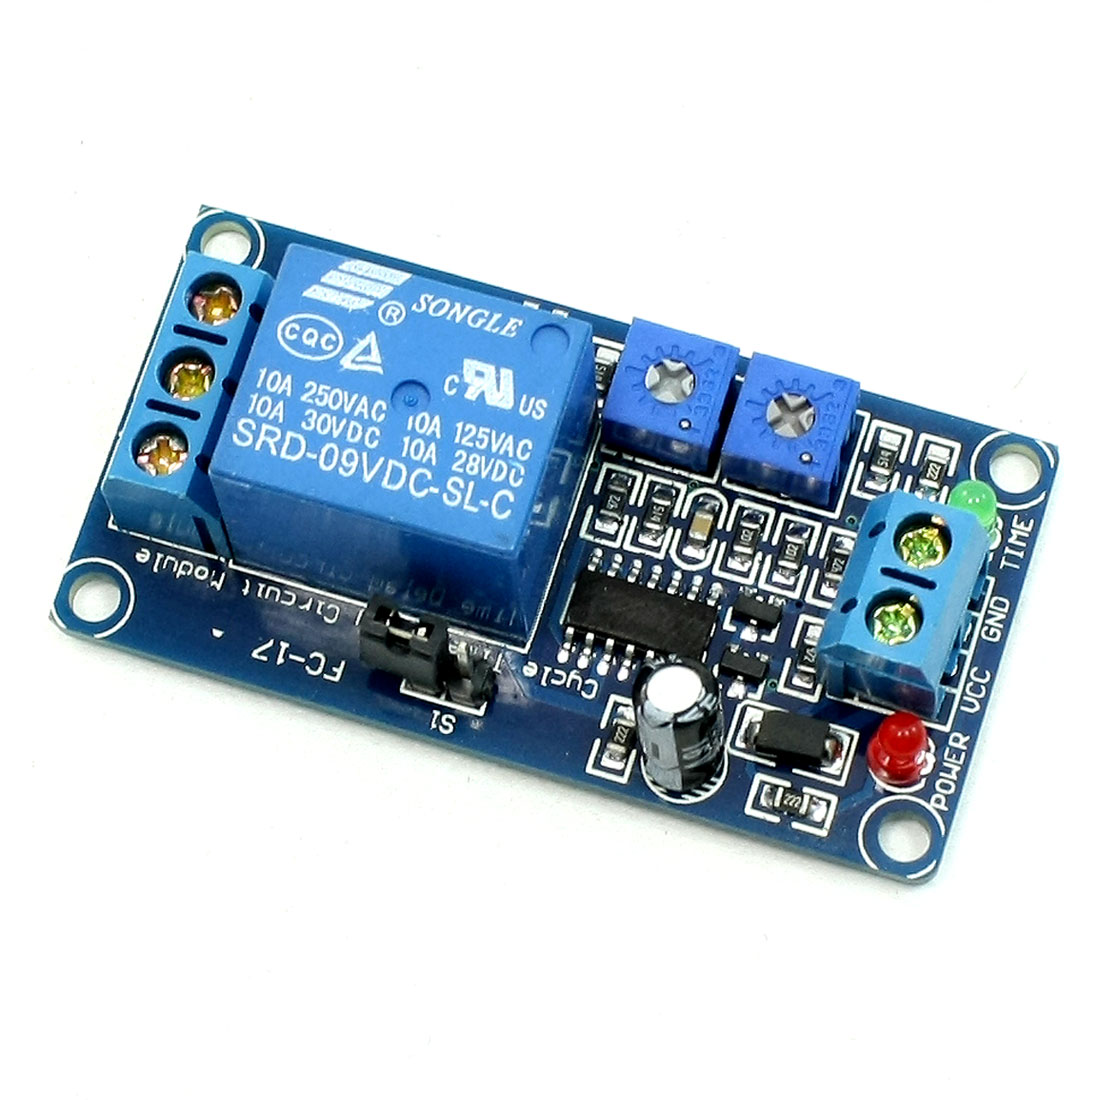 SRD-9VDC-SL-C Circulate Time Delay Module Board w Optocoupler